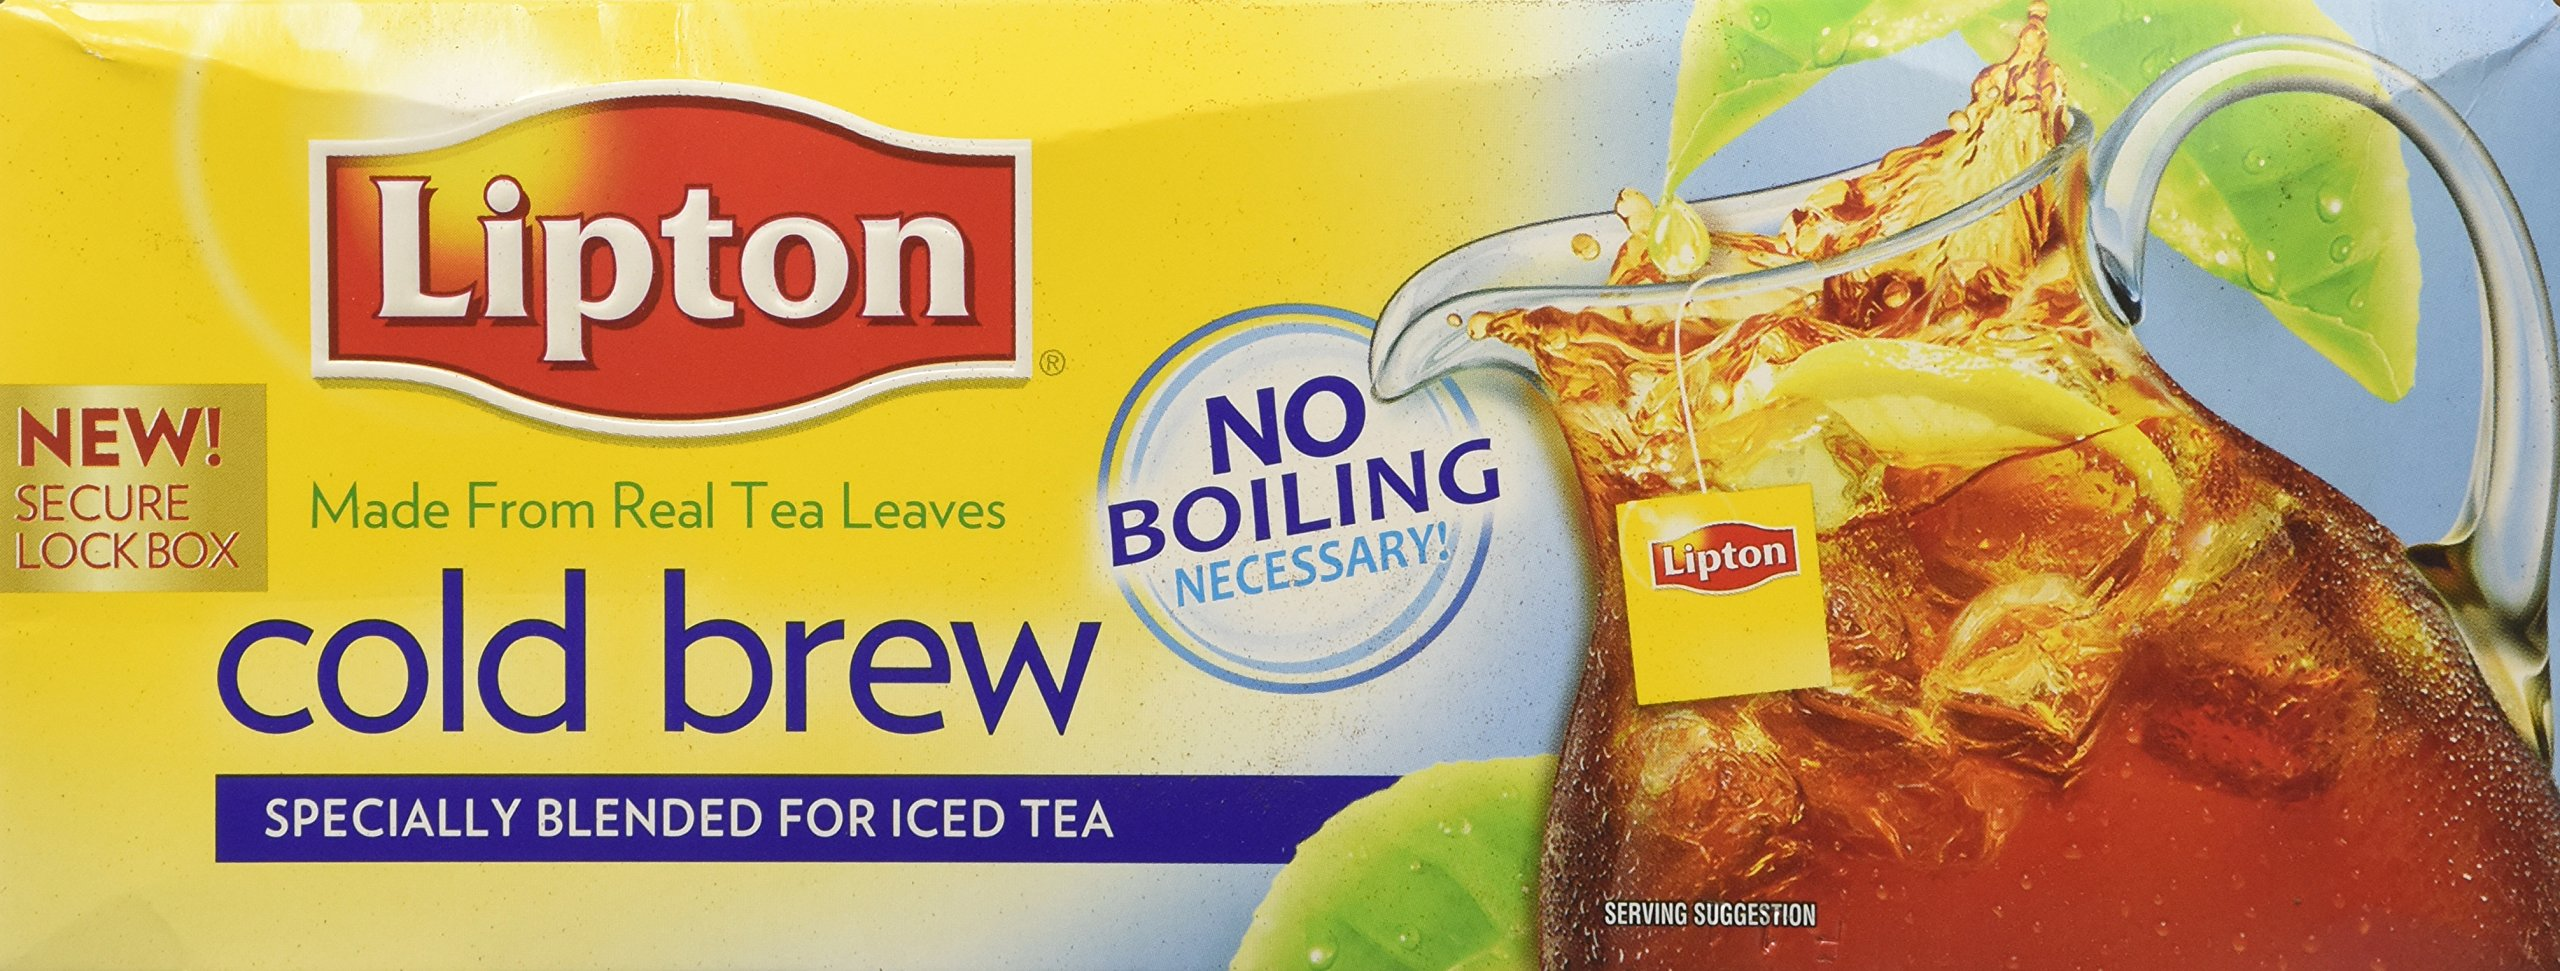 Lipton Cold Brew Family Iced Tea Bags Black tea 22 ct (Pack of 3) by Lipton